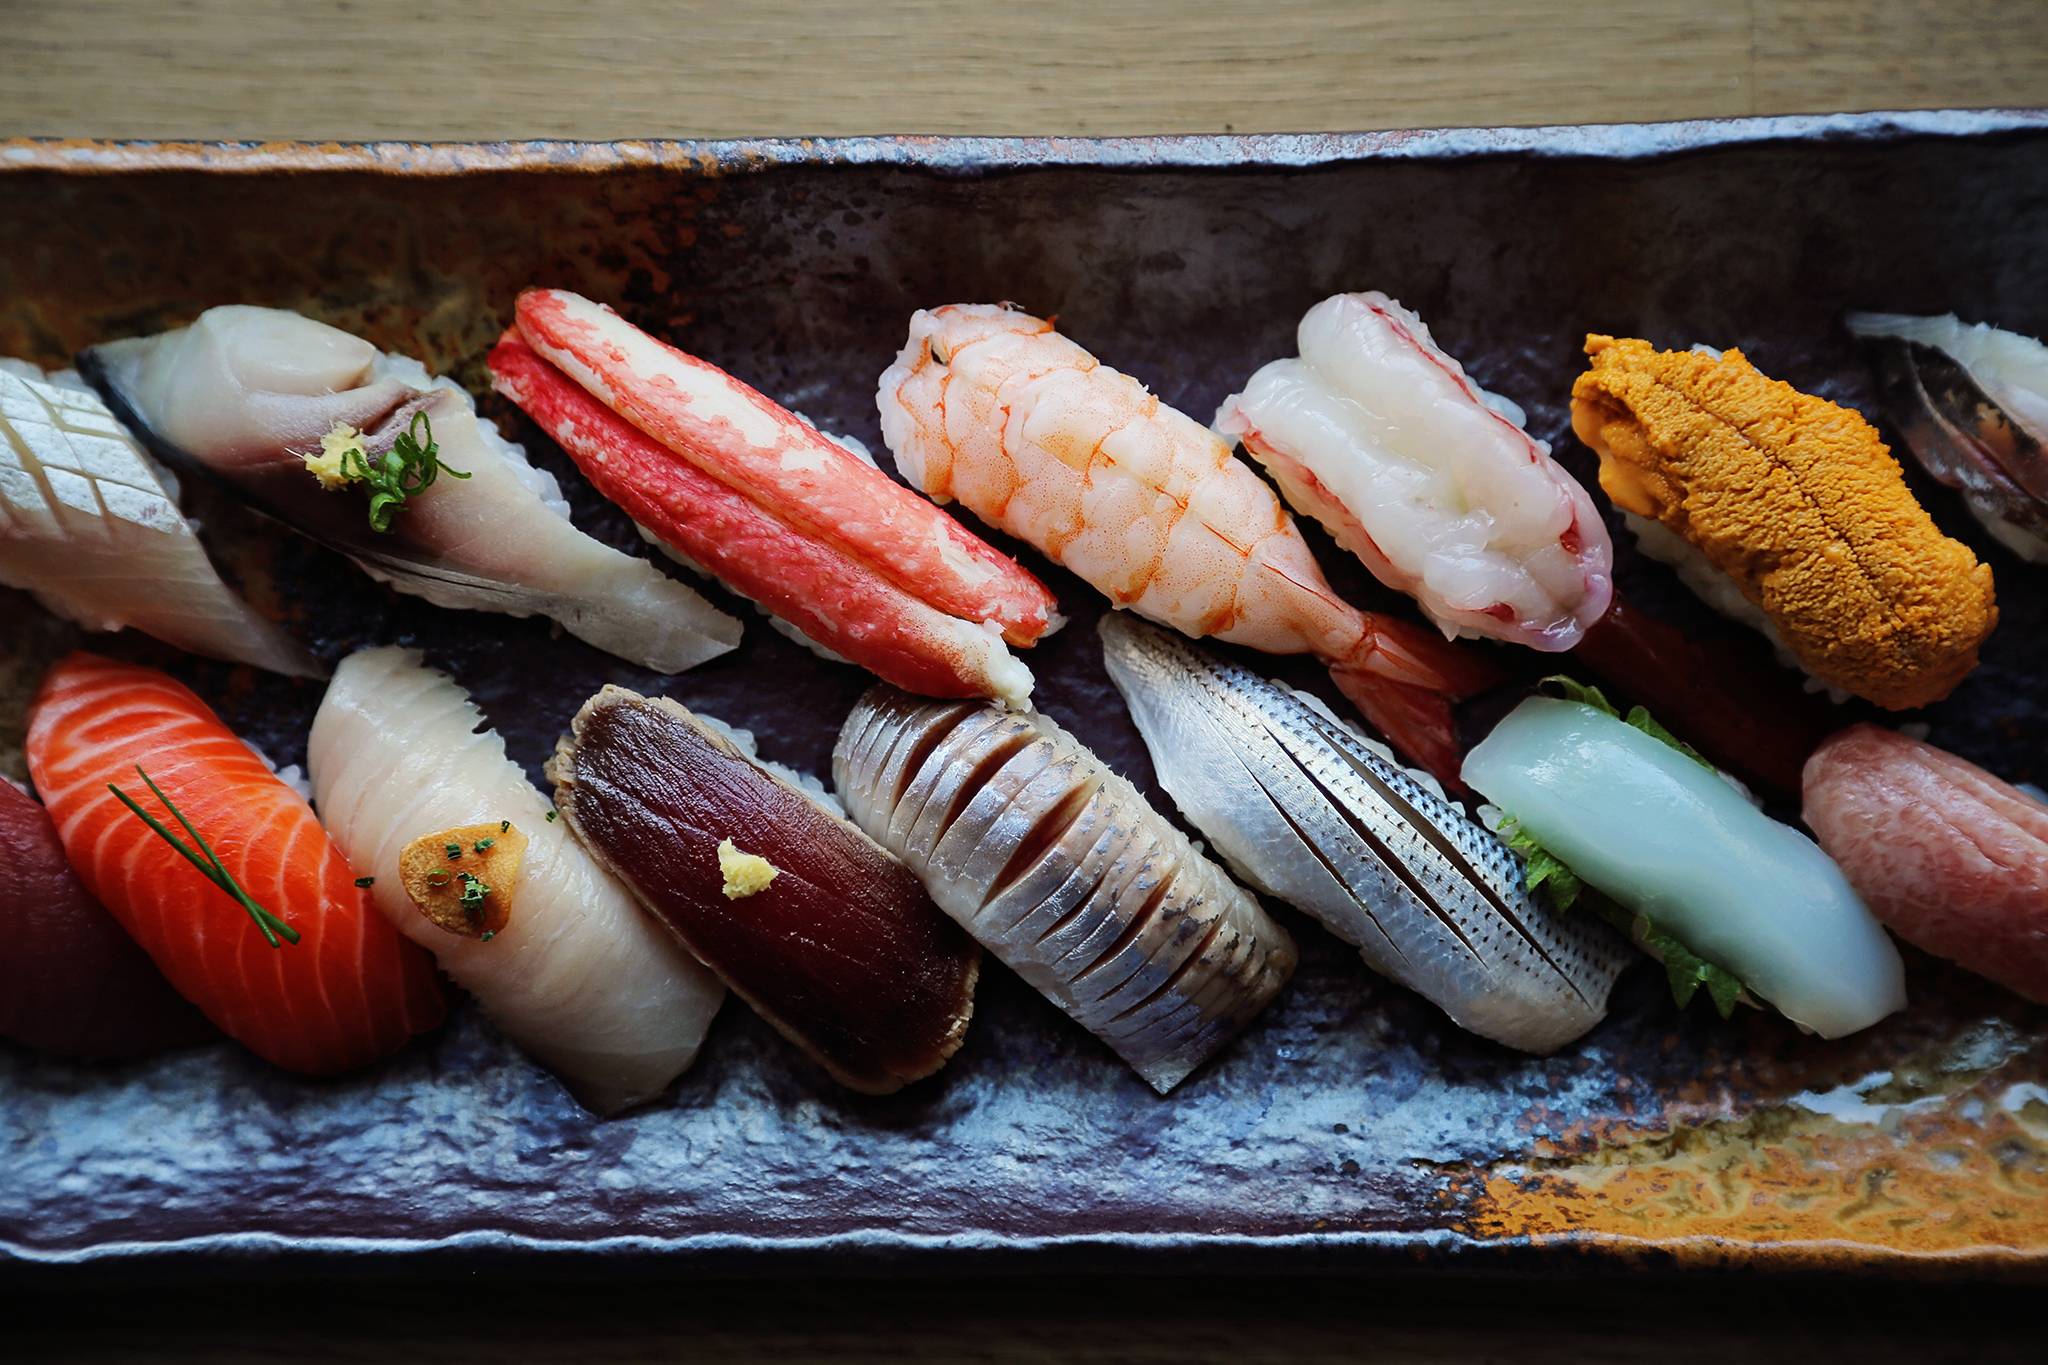 The 21 best sushi restaurants in America